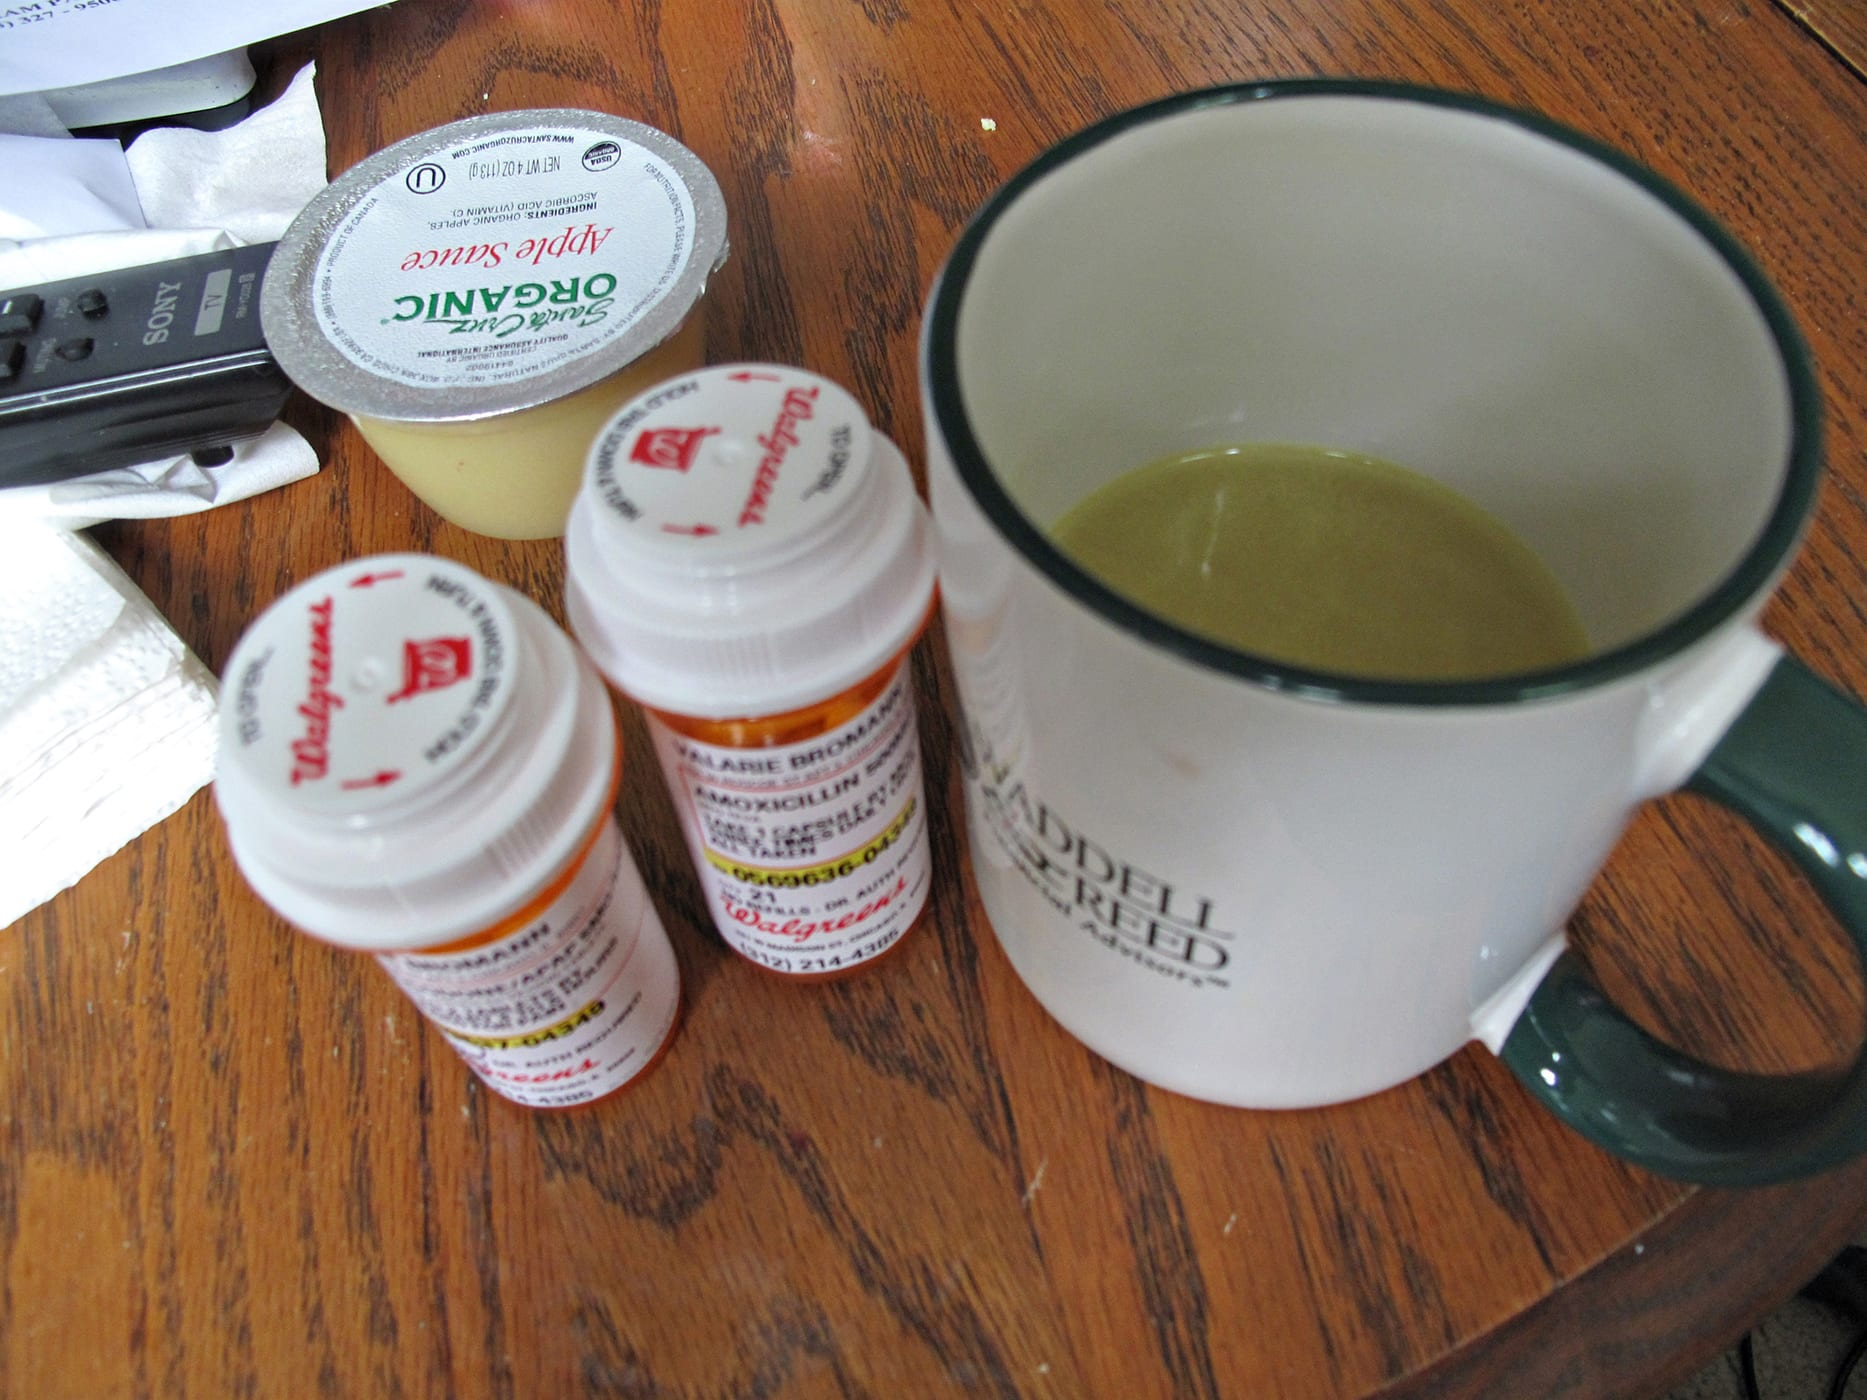 Wisdom tooth diet - chicken broth